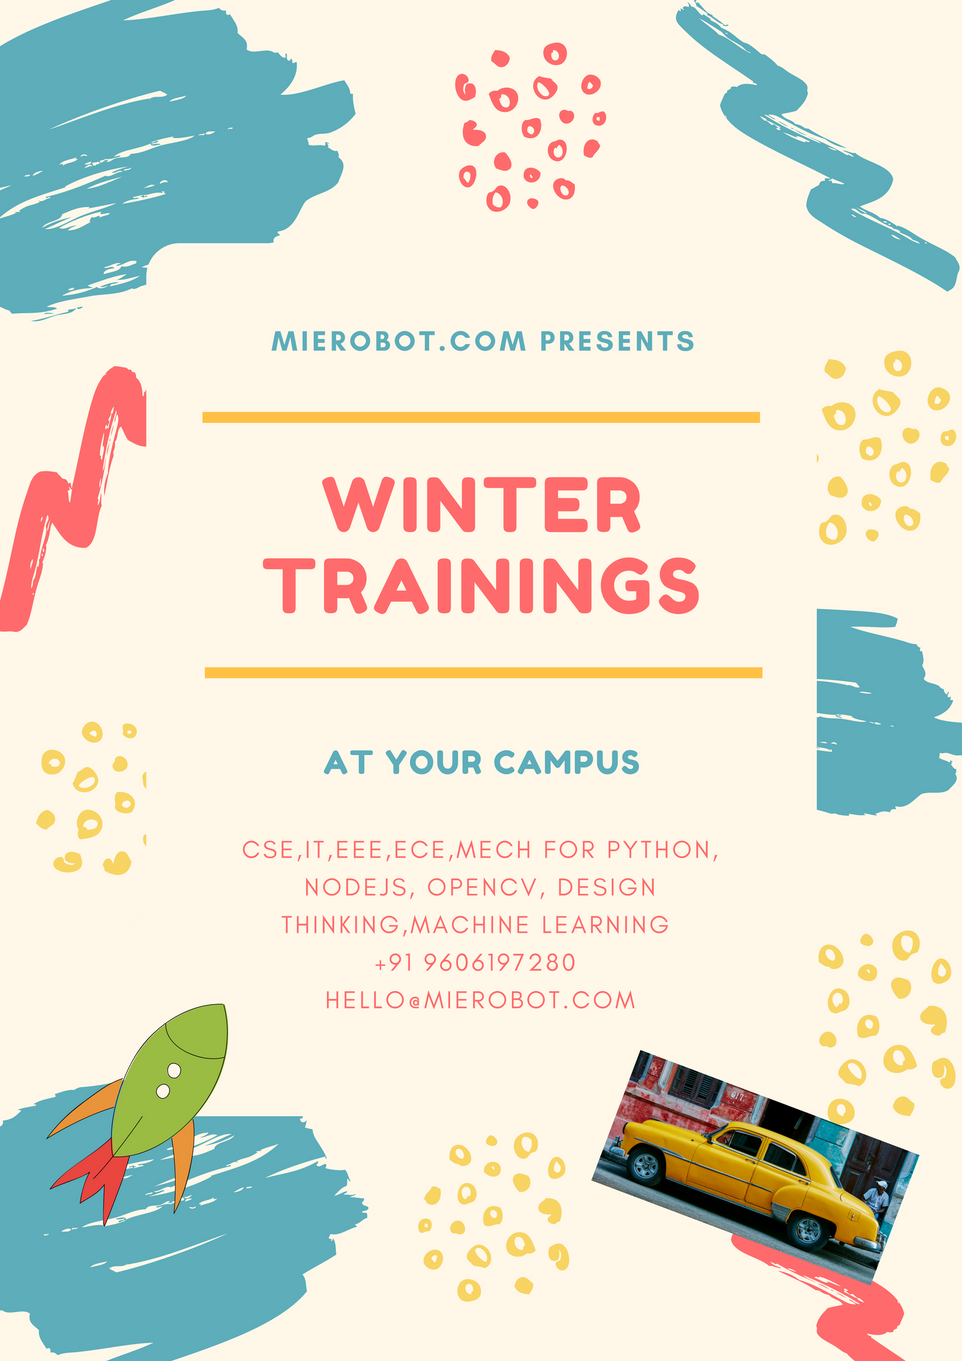 Winter training at your campus from MieRobot.com